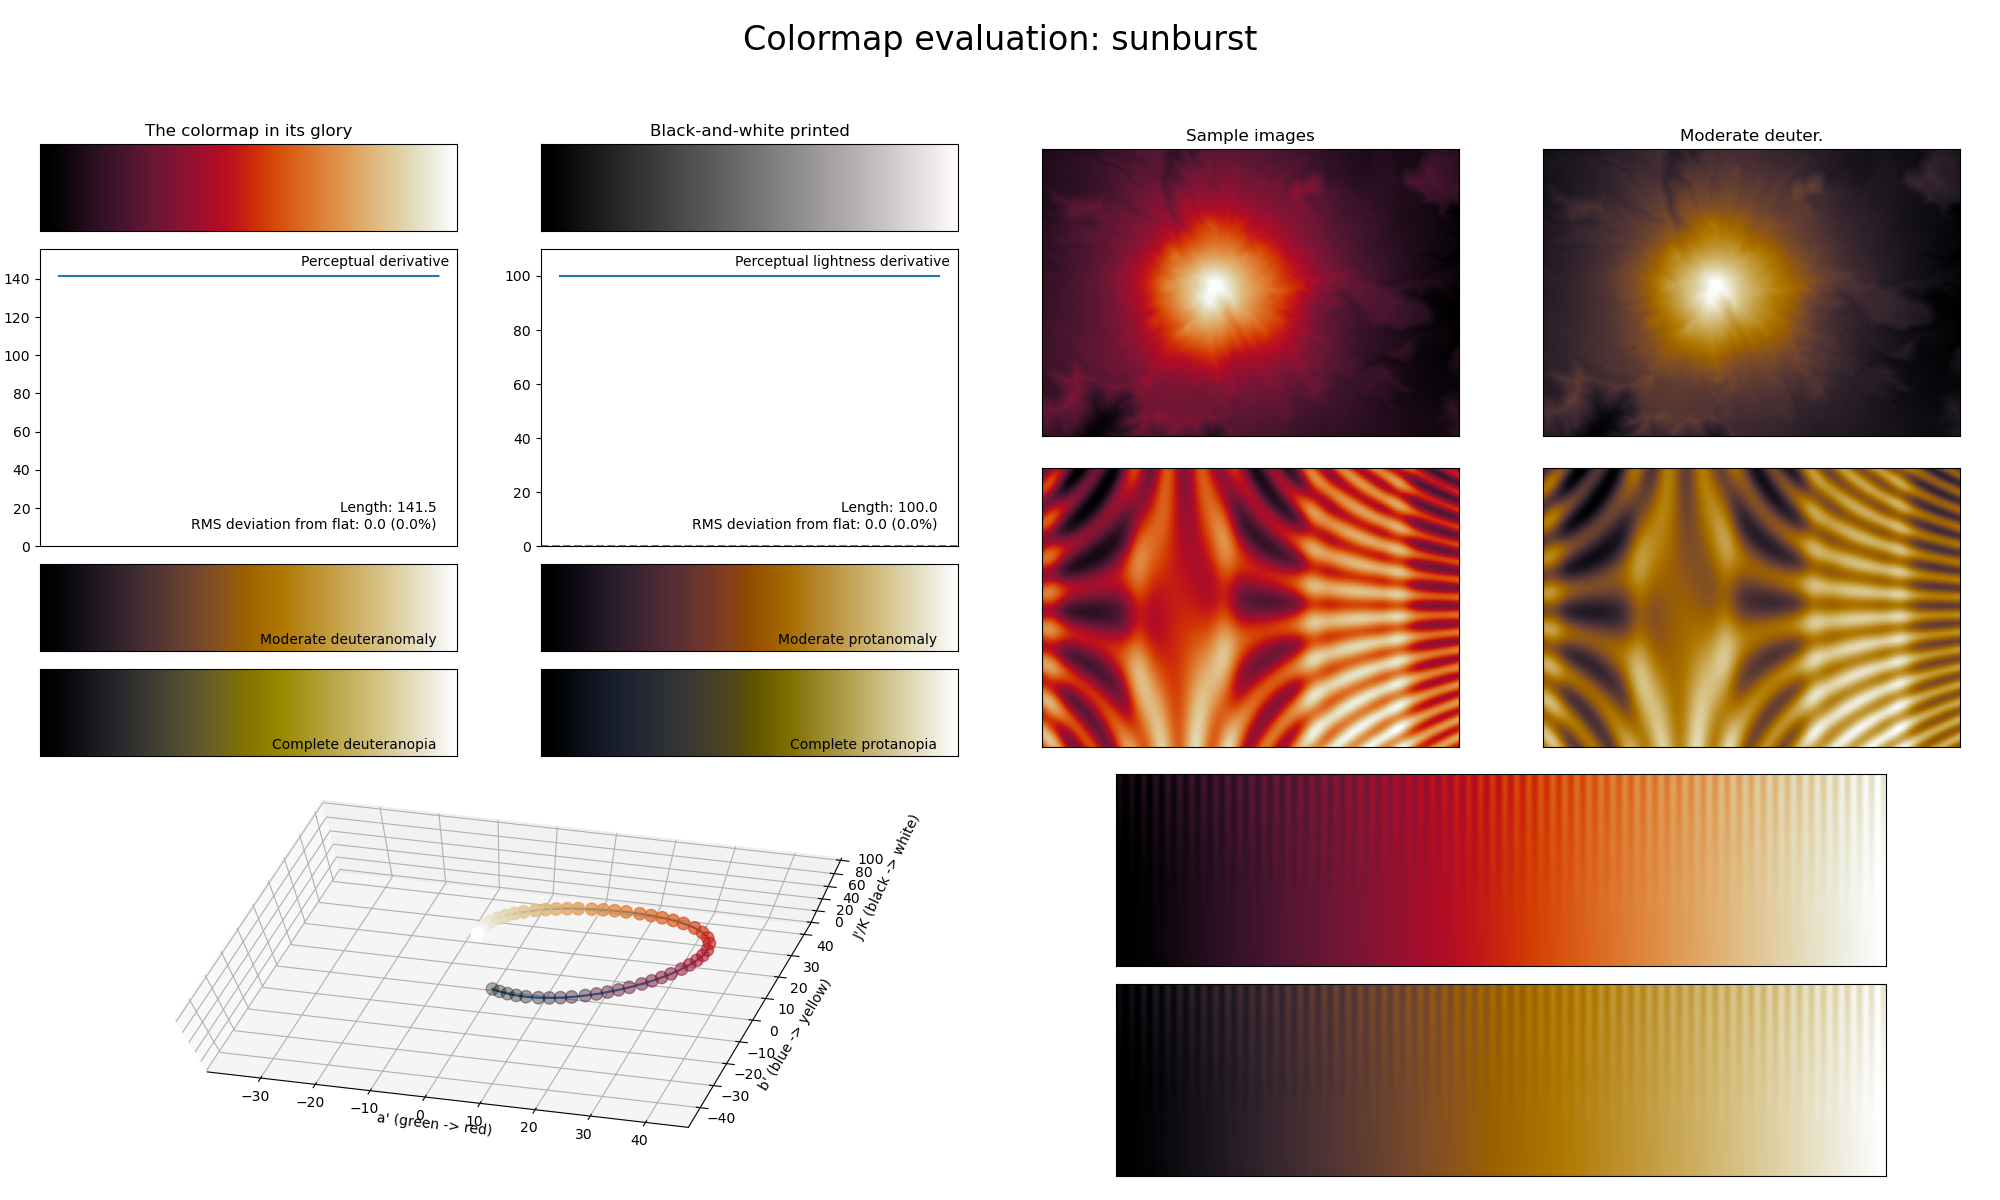 Statistics of the *sunburst* colormap.